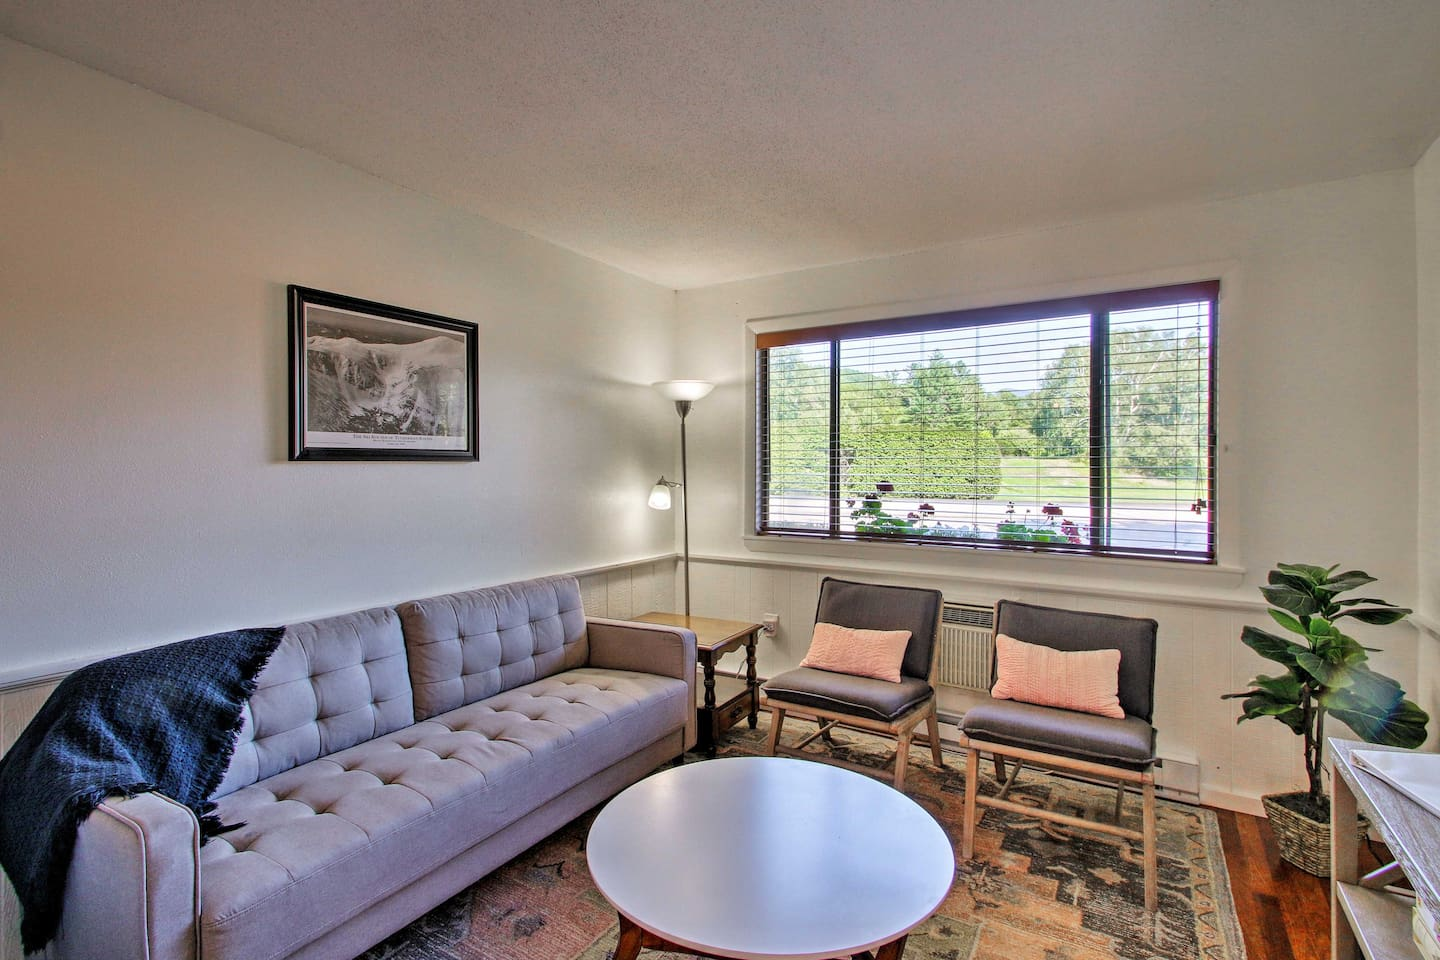 This 2-bedroom, 1-bath vacation rental offers space for up to 6 travelers.